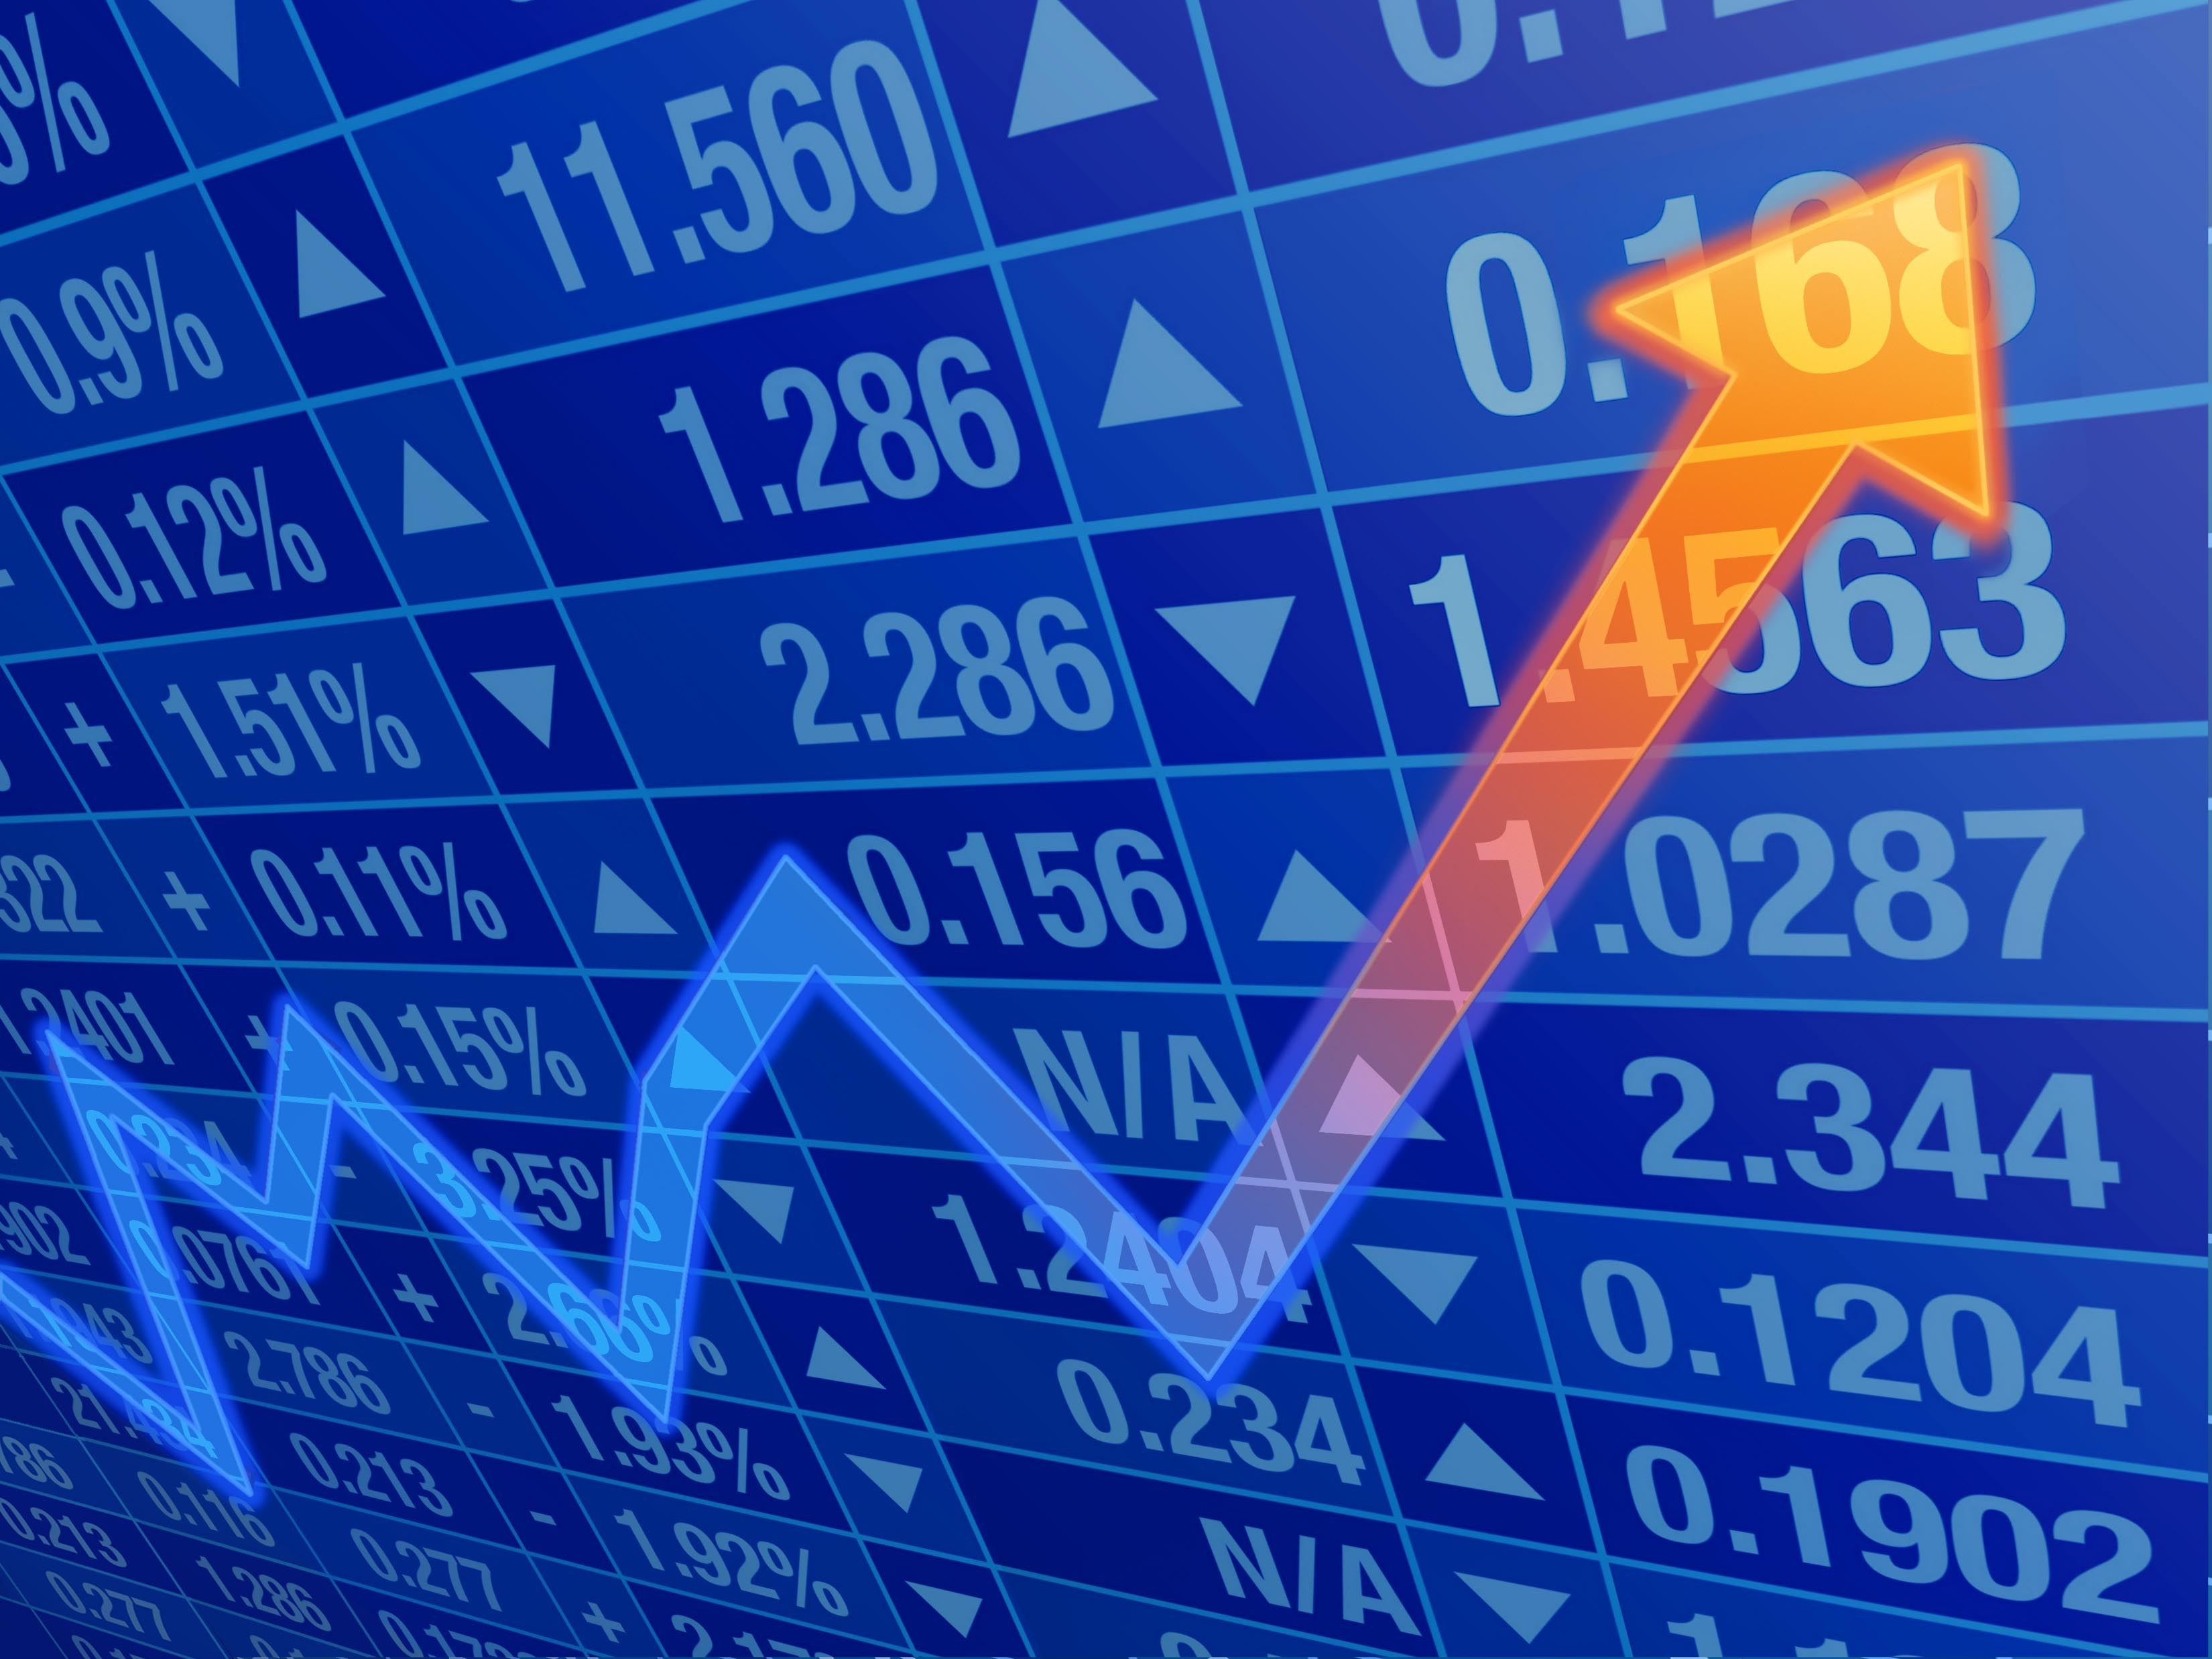 Don't Miss these Stocks: Bunge Limited (BG), Tractor Supply Company (TSCO)